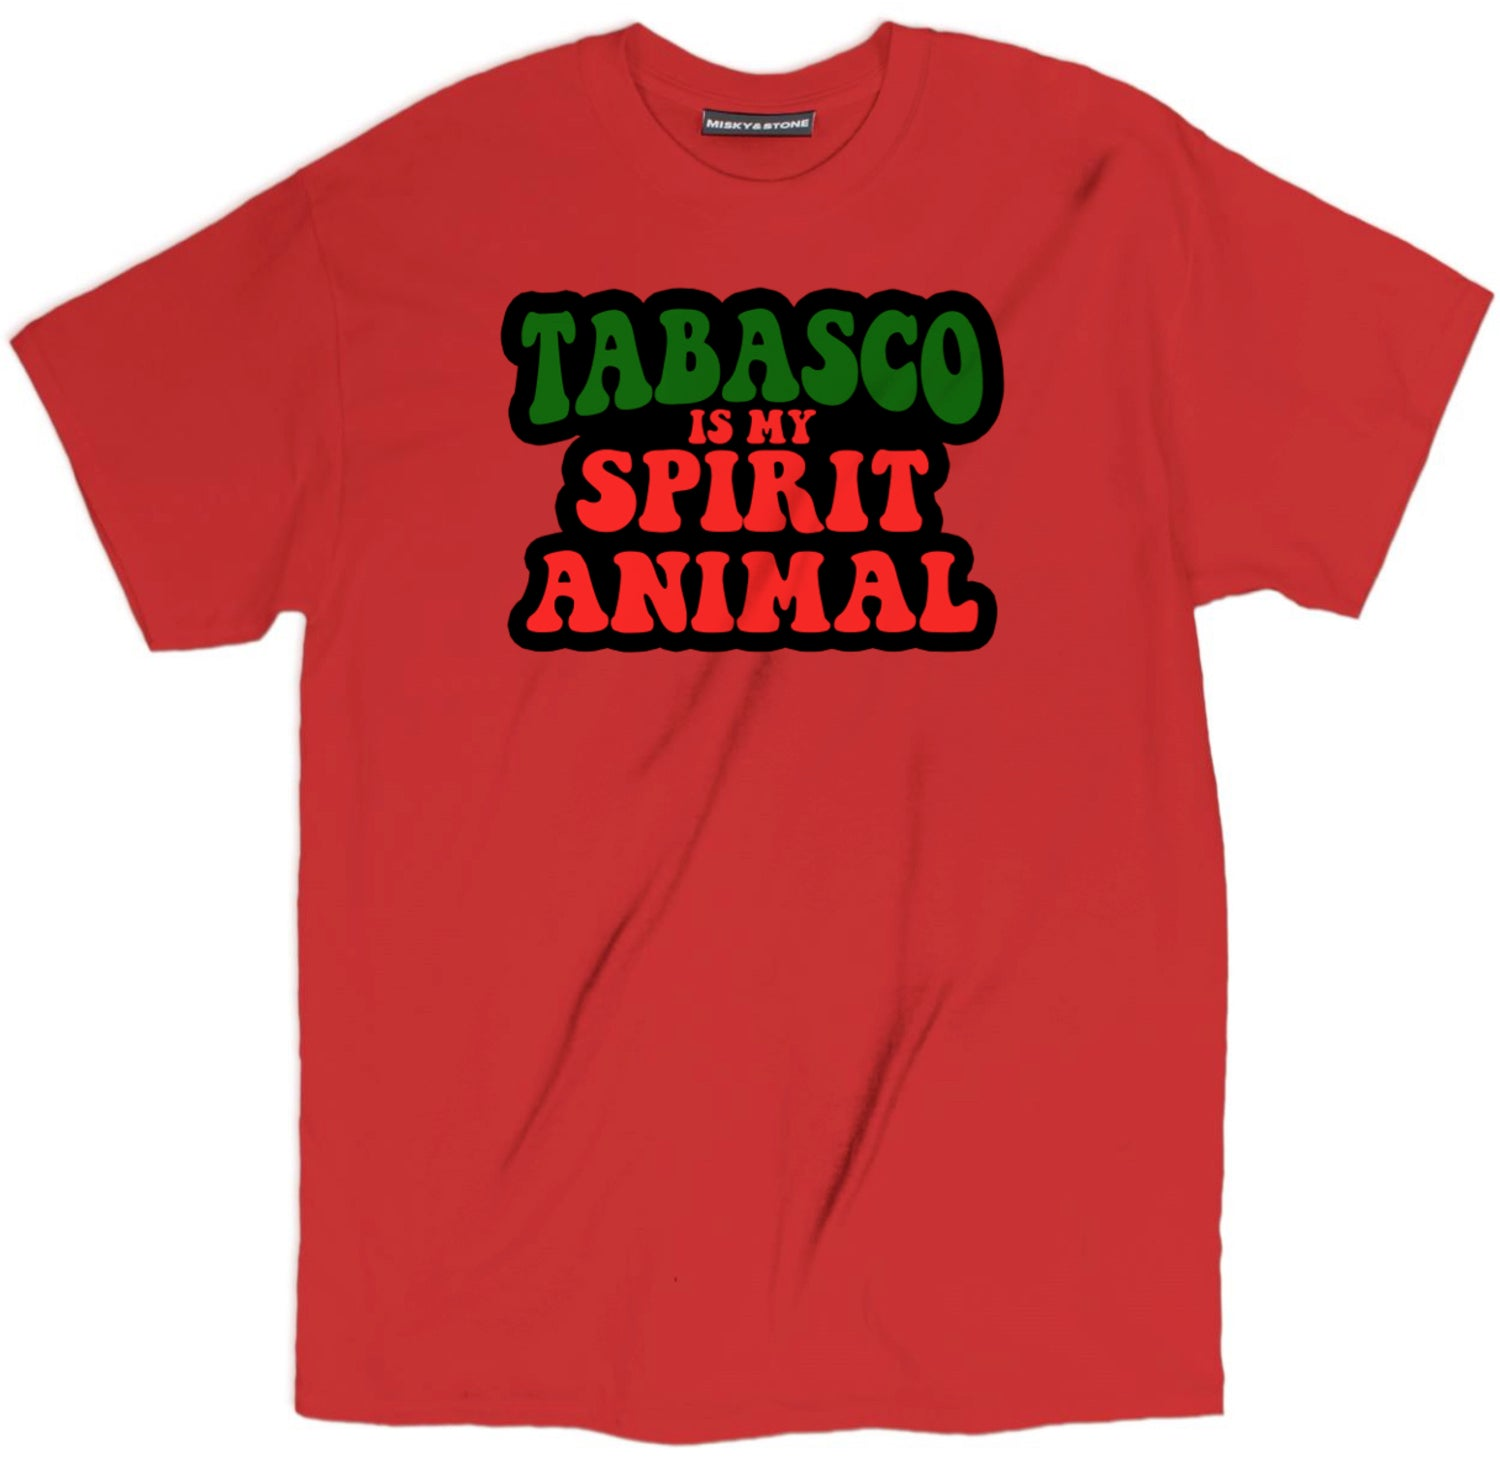 tabasco is my spirit animal t shirt, hot sauce t shirt, spirit animal tee, funny t shirts, funny graphic tees, awesome shirts, hilarious shirts, cool t shirts, funny shirts, funny tee shirts, novelty t shirts, awesome t shirts, cool tee shirts, funny tees, crazy t shirts, funny graphic tees, funny tshirt sayings, pun t shirts, awesome shirts, funny tshirt quotes,  tshirt sayings, pun t shirts, awesome shirts